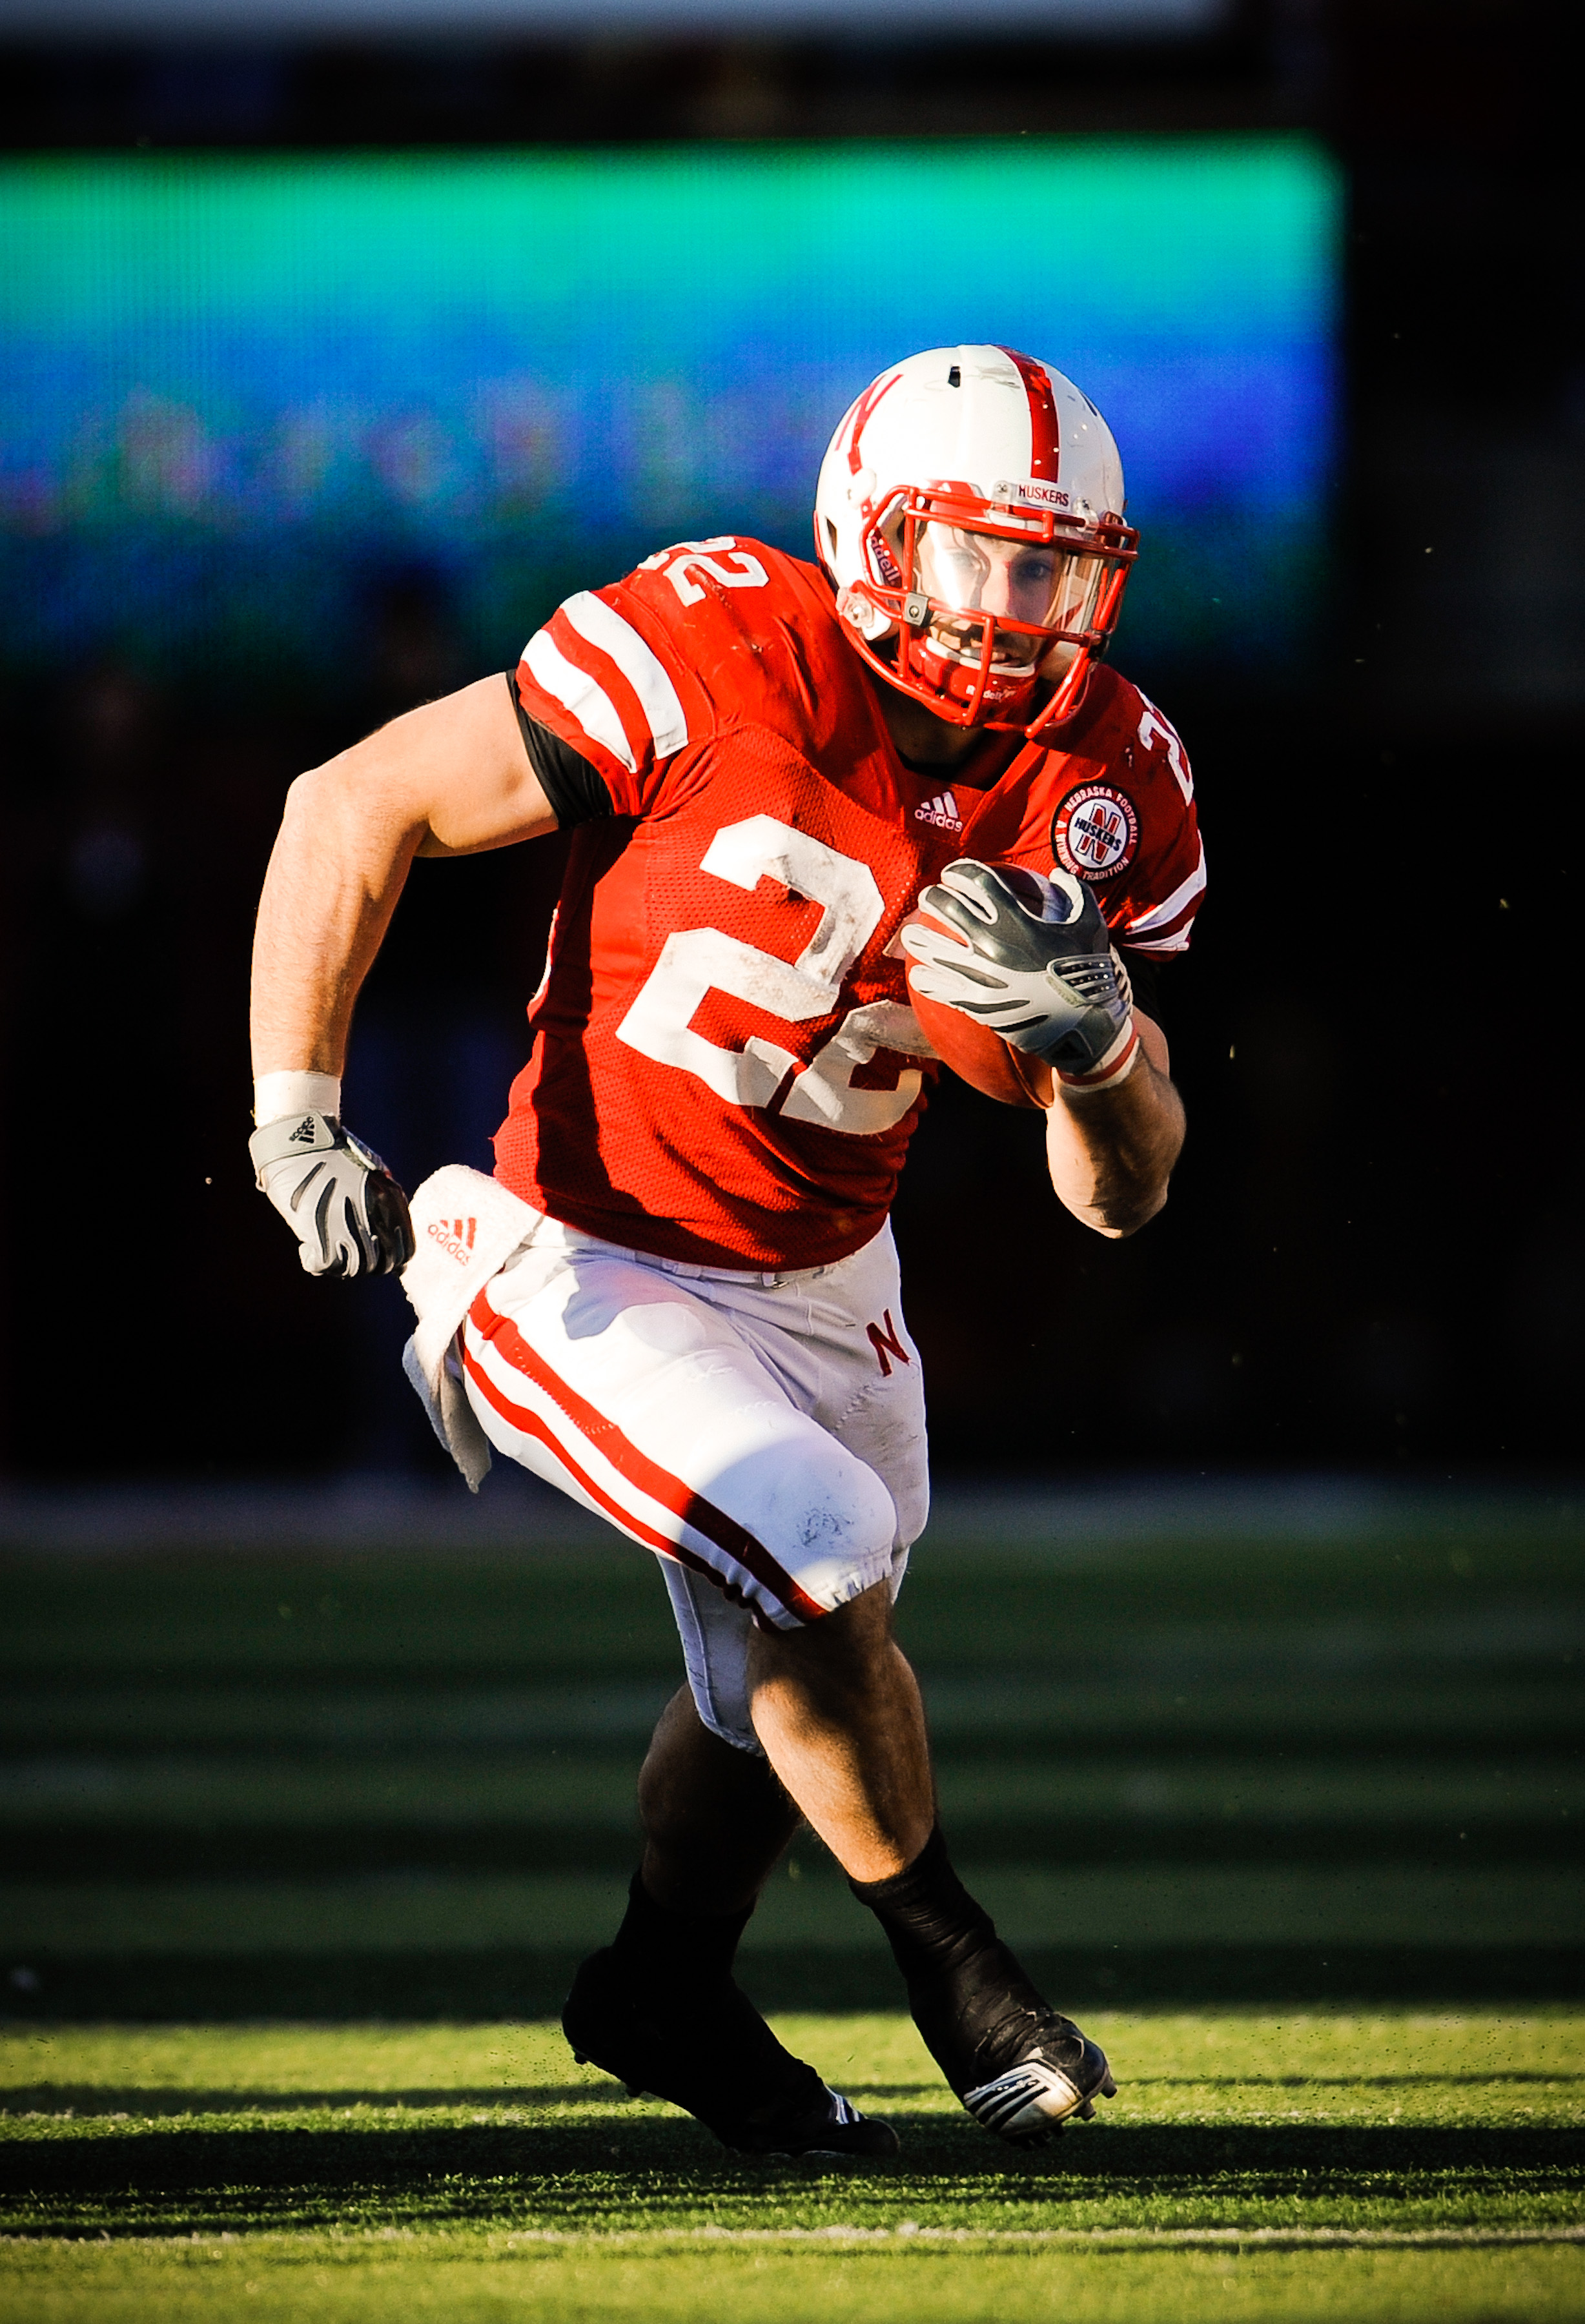 LINCOLN, NE - NOVEMBER 26: Rex Burkhead #22 of the Nebraska Cornhuskers runs the ball during their game at Memorial Stadium on November 26, 2010 in Lincoln, Nebraska. Nebraska defeated Colorado 45-17 (Photo by Eric Francis/Getty Images)